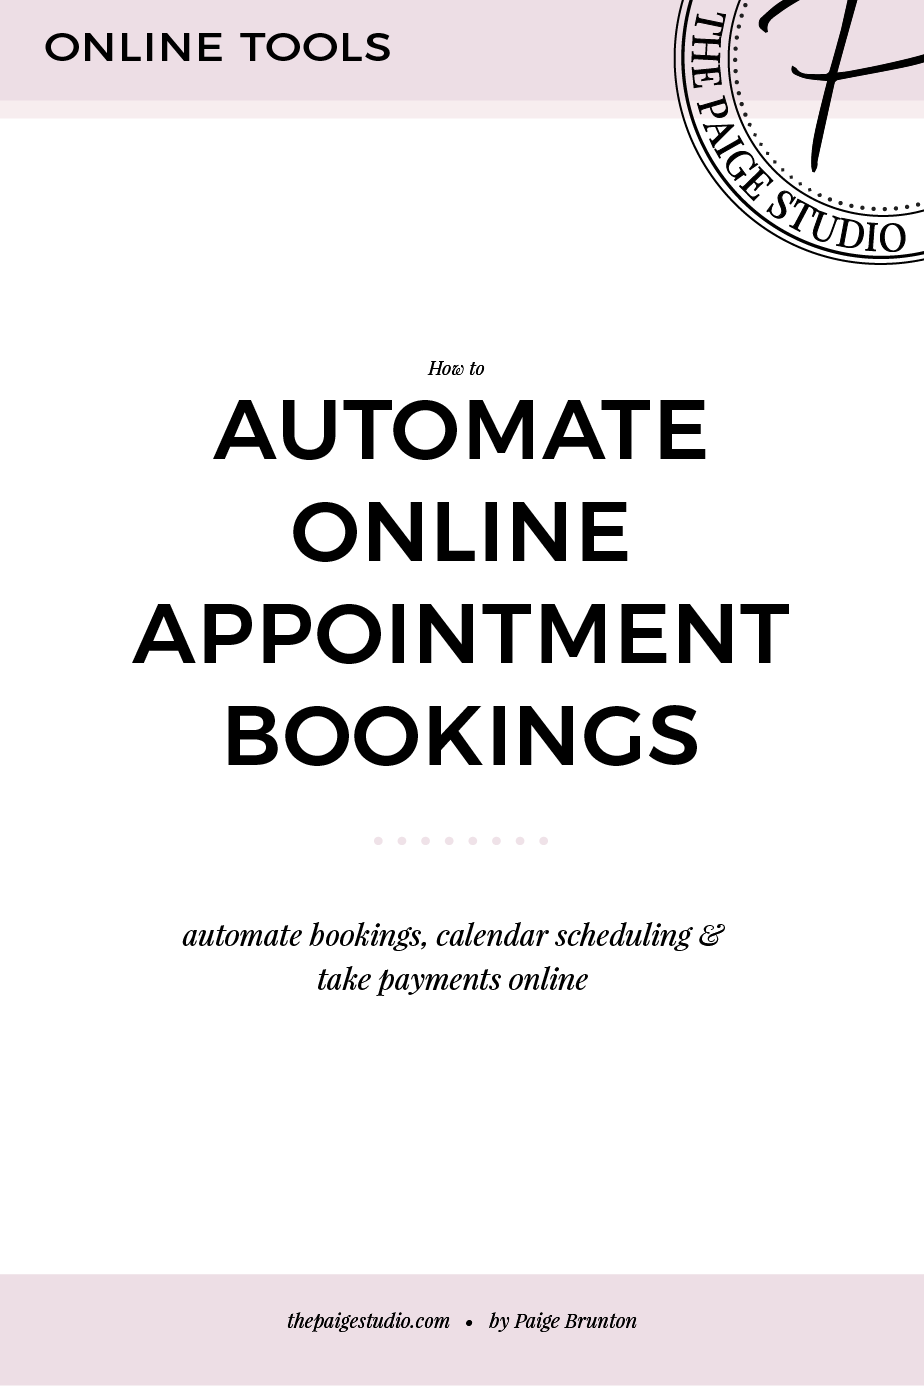 How to automate appointment bookings, add them to your calendar, and take payments online quickly & easily